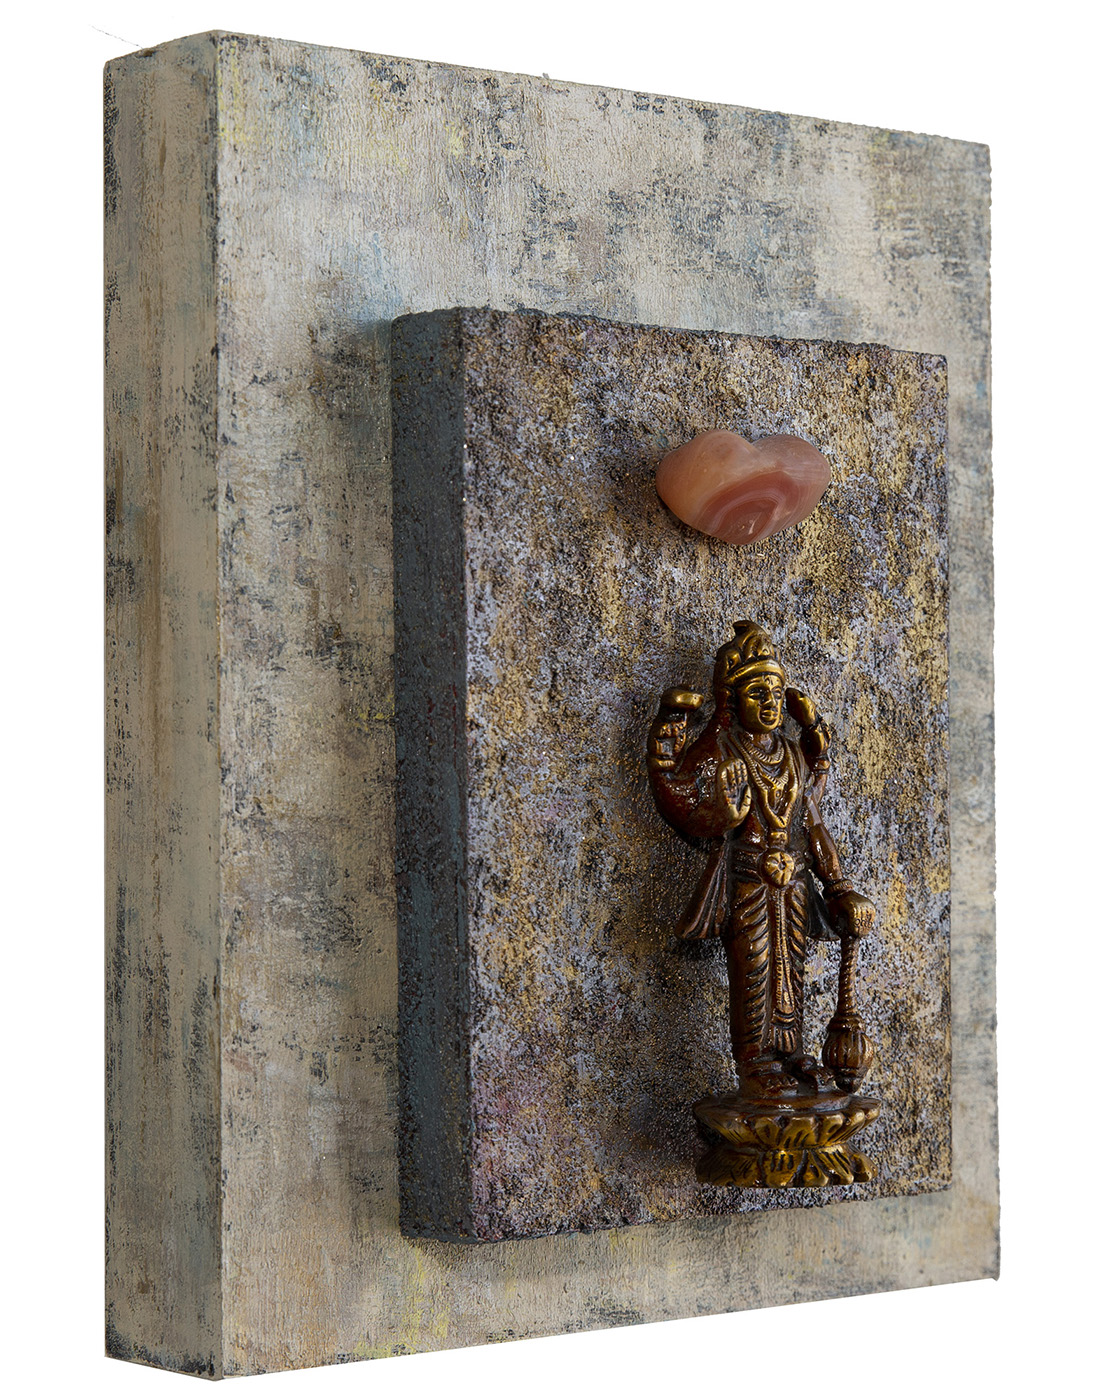 """Good Fortune, Positive Choices, Lakshmi with Carnelian, 2018 Mixed Media on cradled wood panels, 8""x10""x1.5"" © Marilyn Grad 2018"